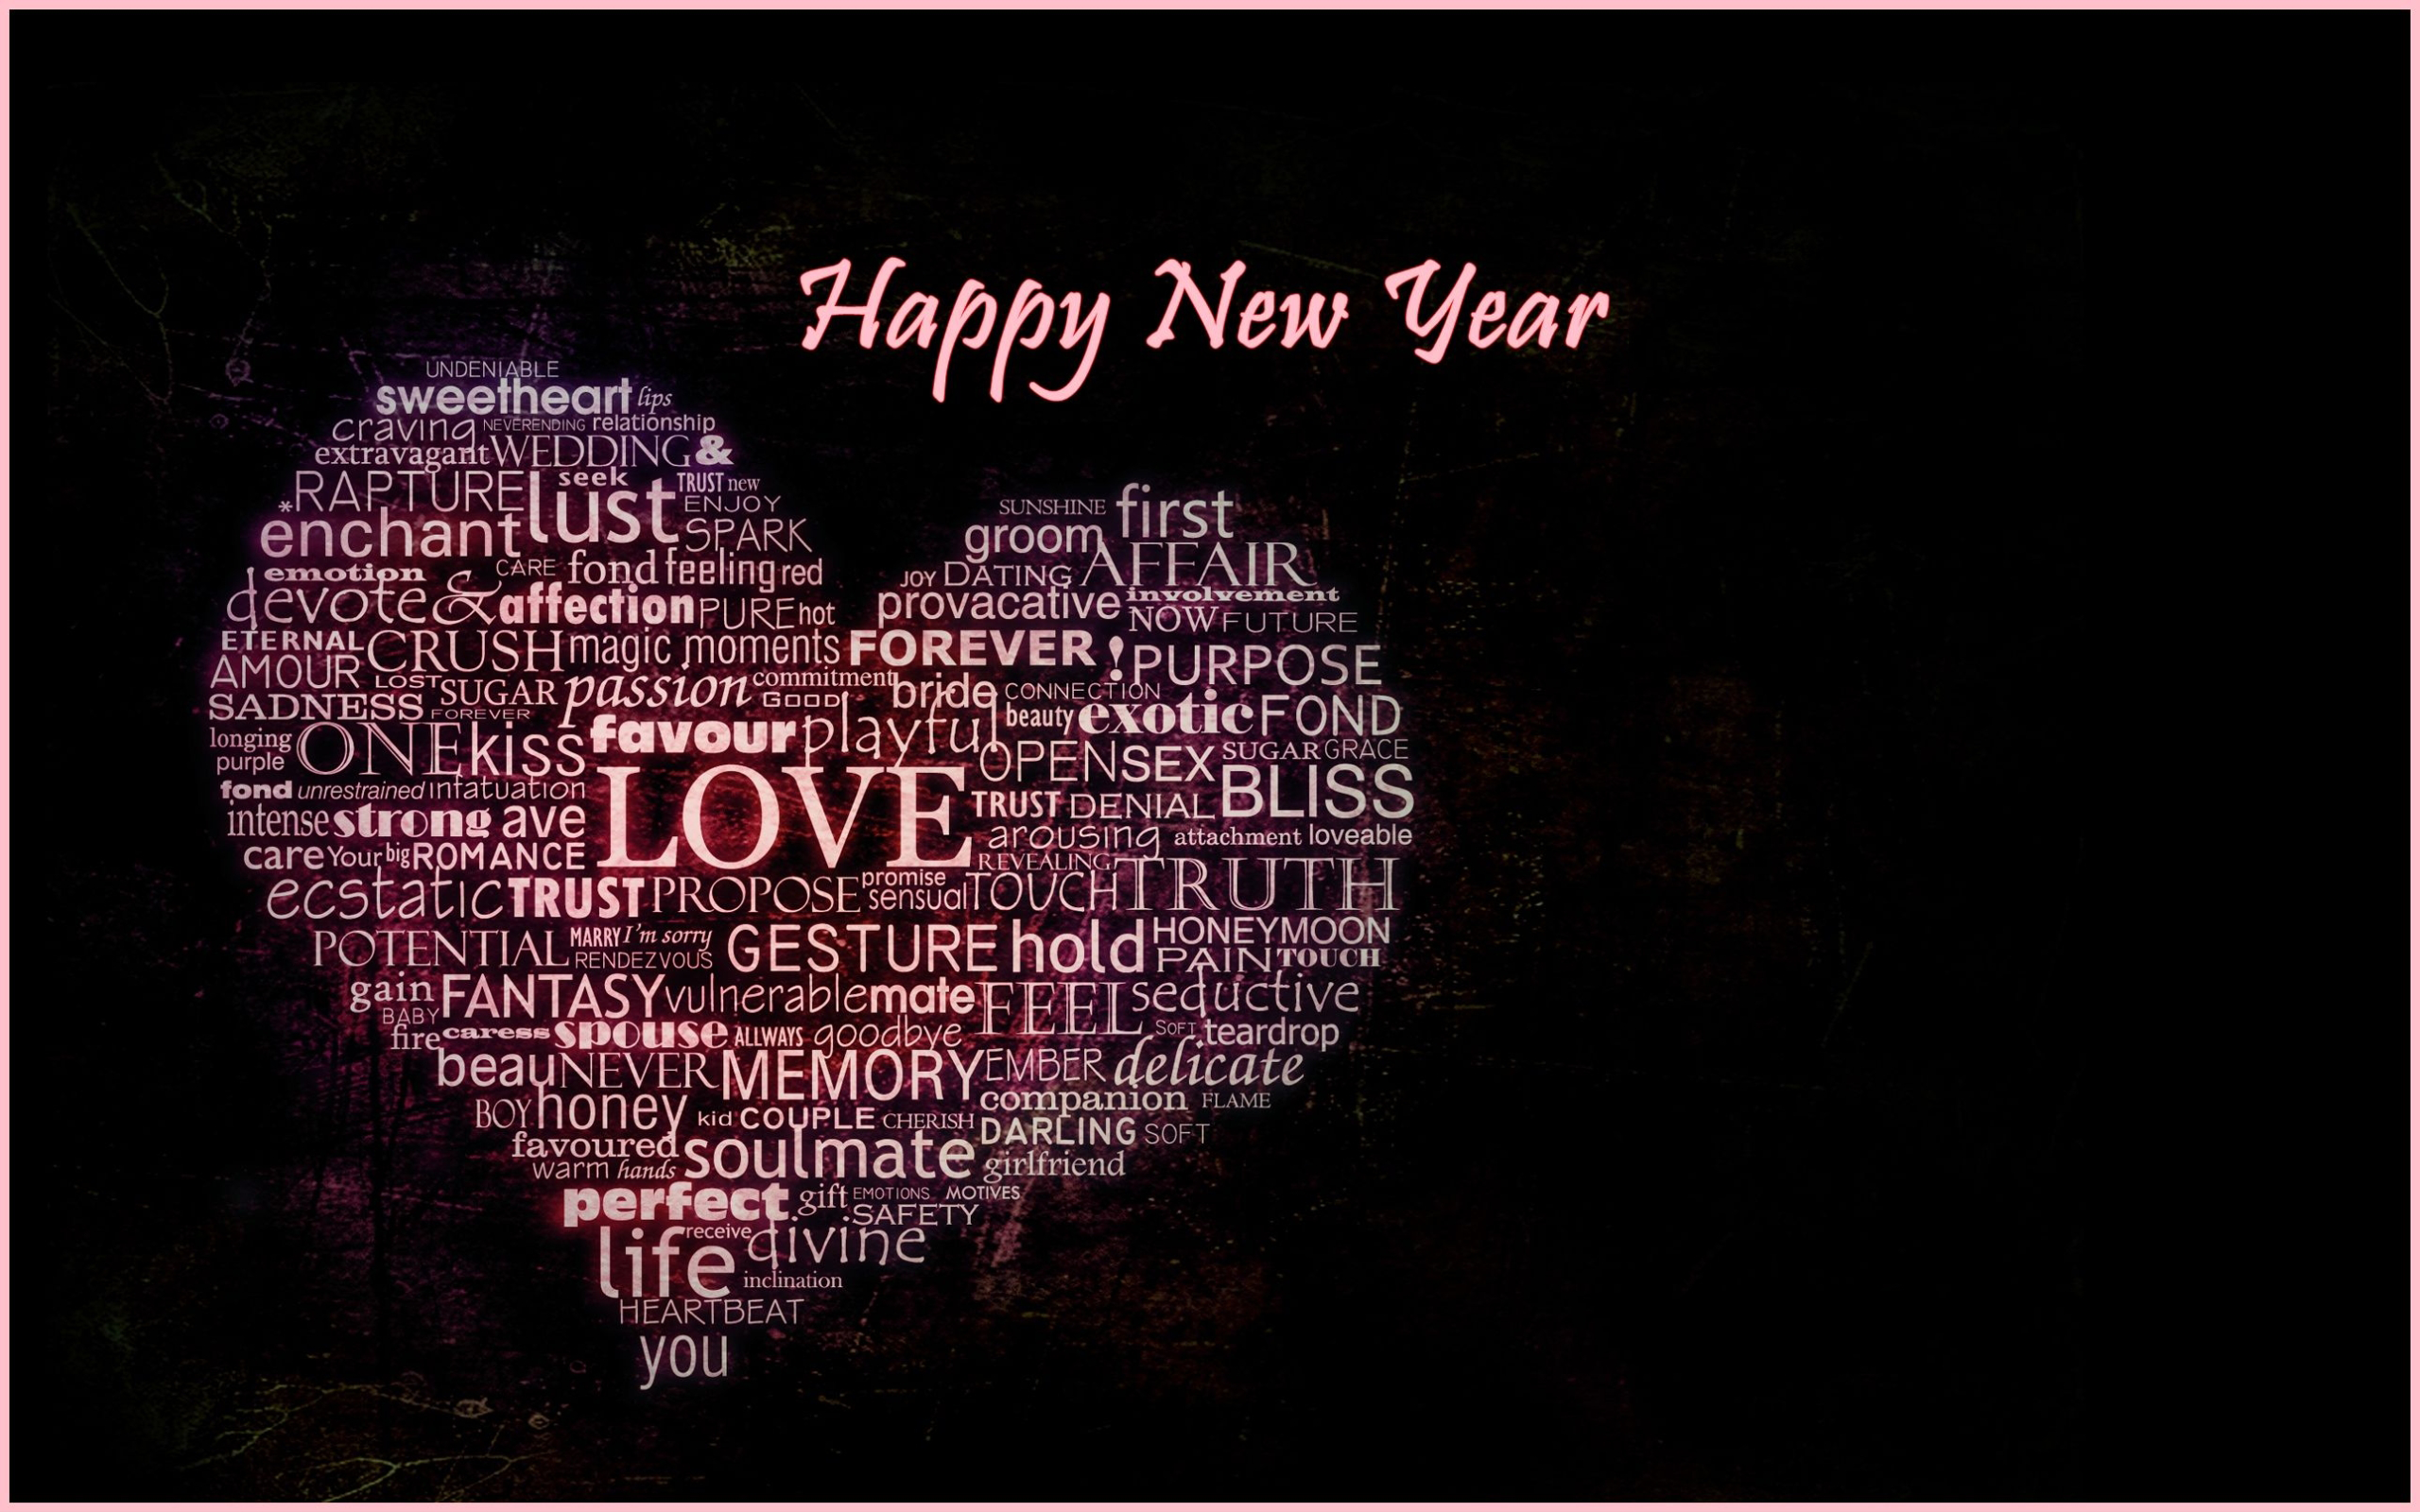 Wish you a happy new year image happy new year wallpapers wish you a happy new year image happy new year wallpapers pinterest messages lyric quotes and inspirational kristyandbryce Gallery